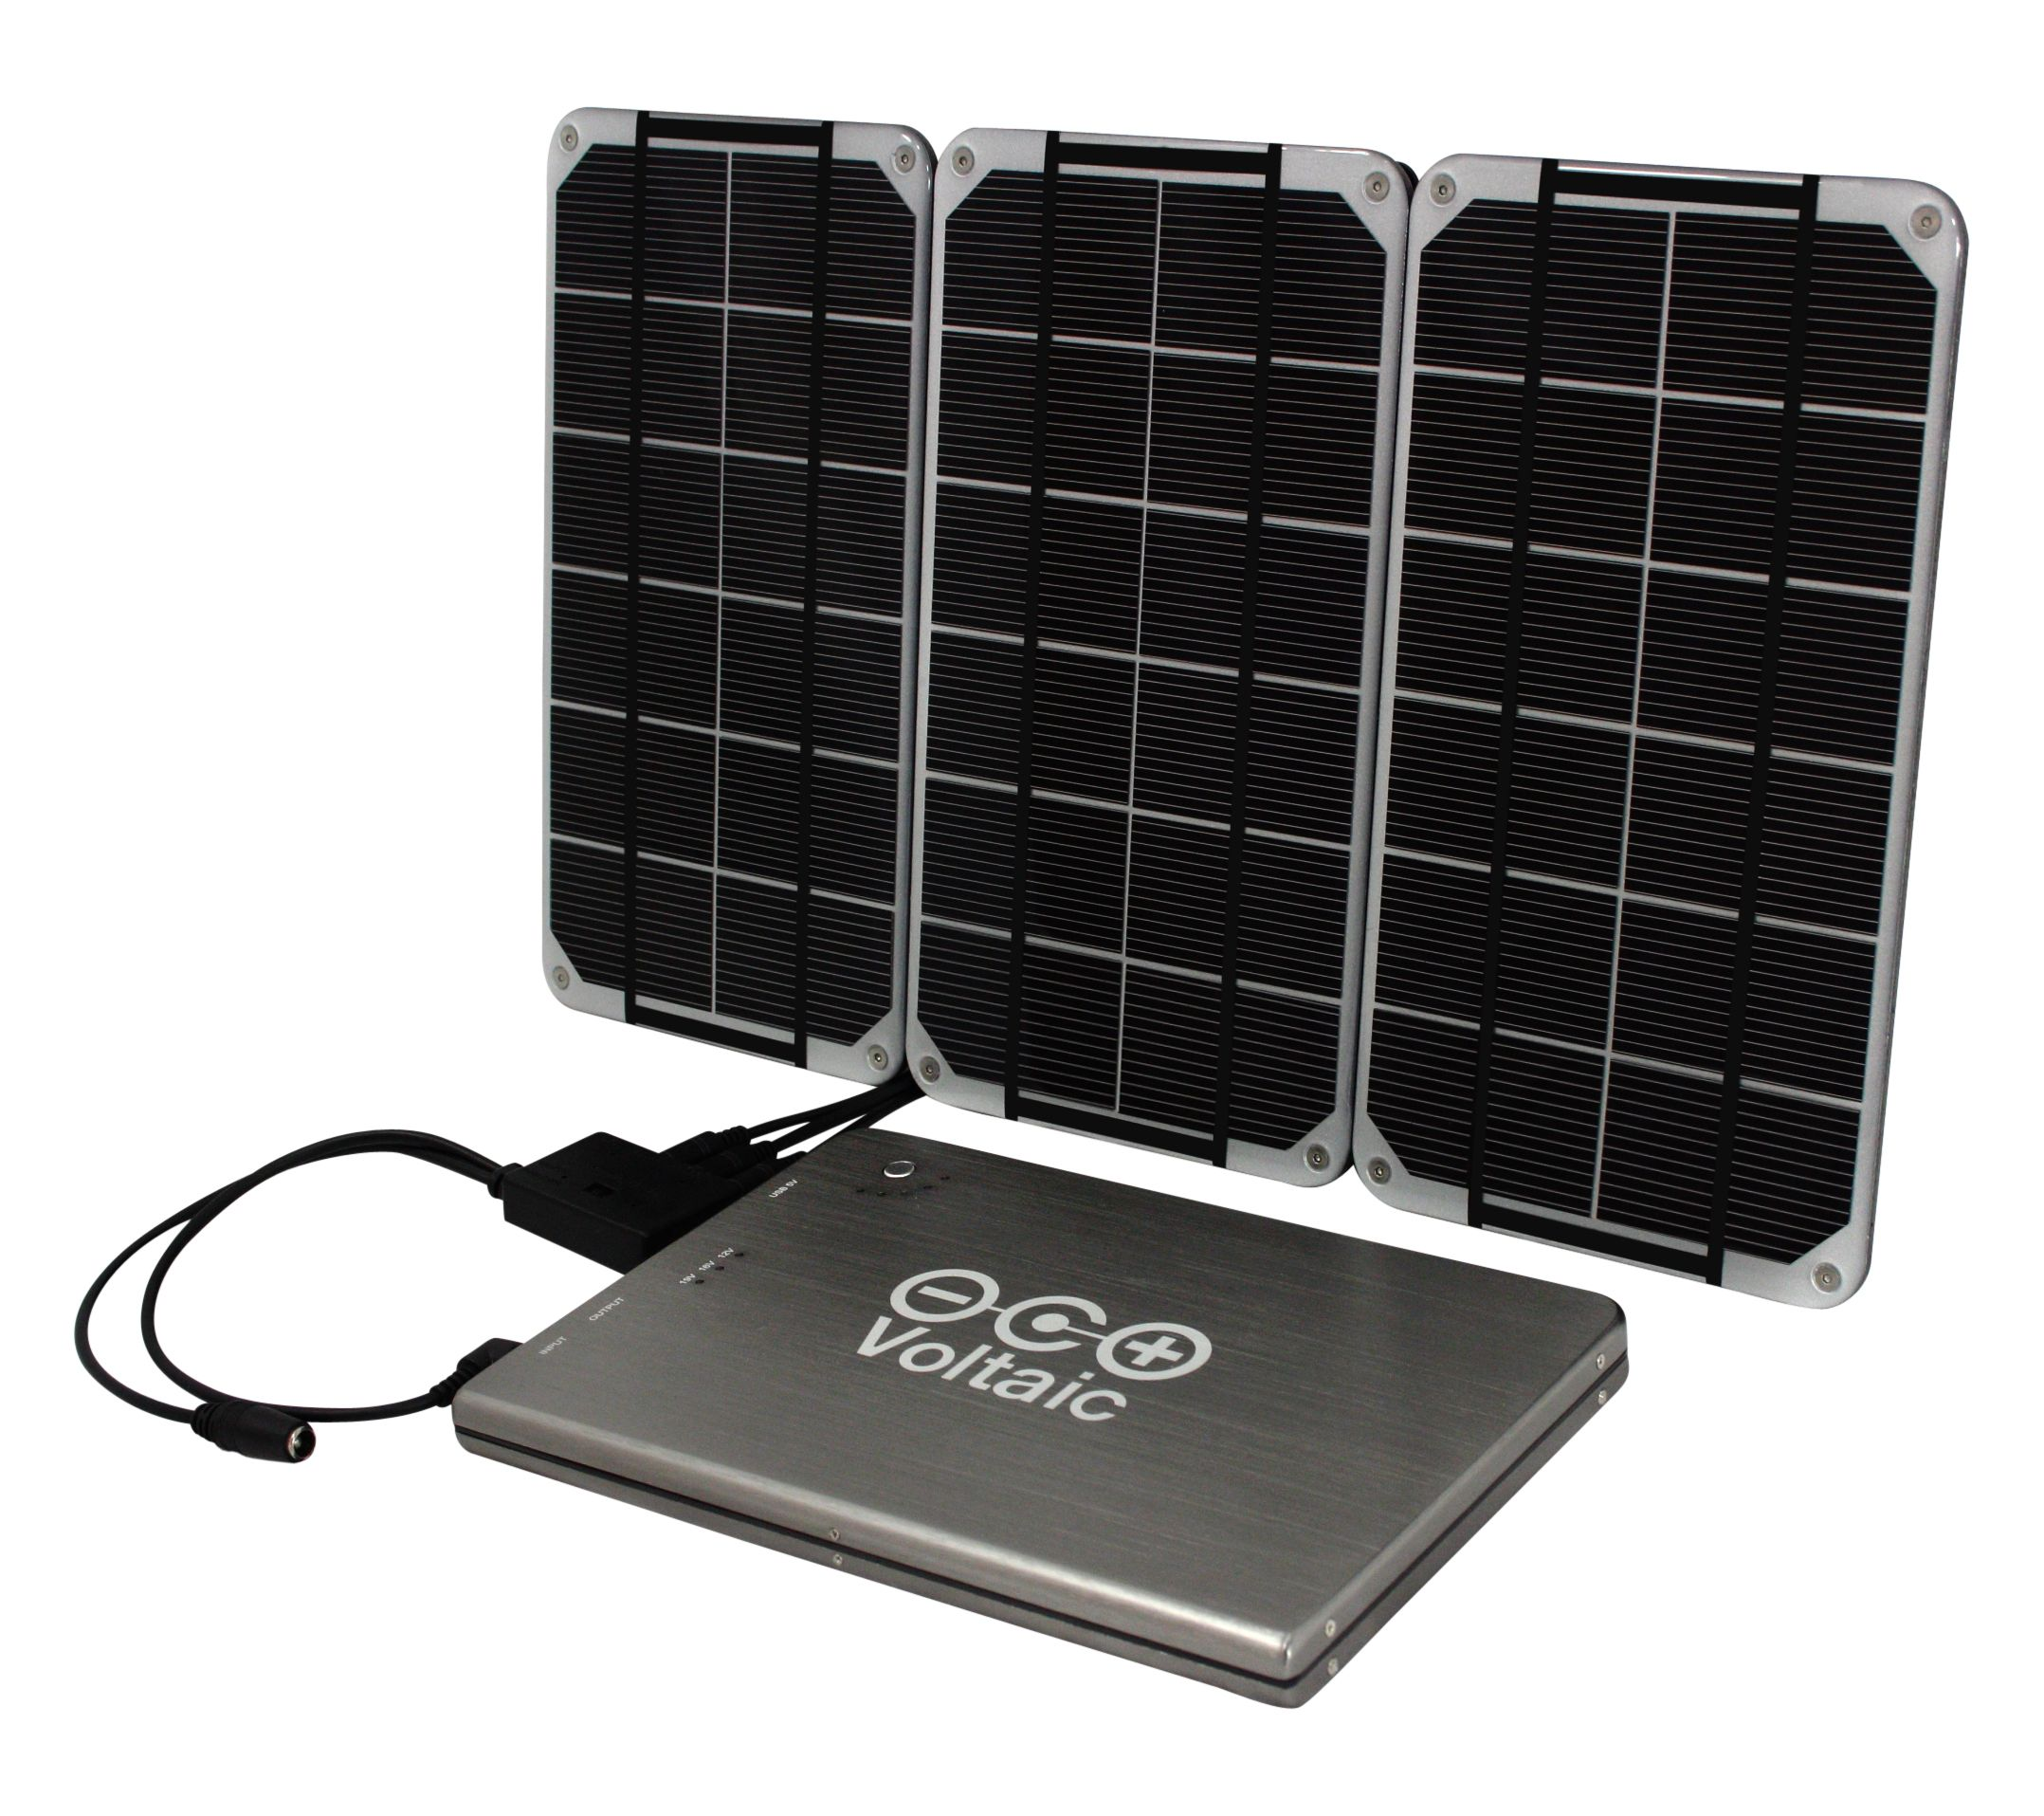 10 Watt Solar Charger Kit Three Rugged Lightweight And Waterproof Solarpanels Combine To Output 10watts At Solar Panel Kits Solar Kit Solar Panels